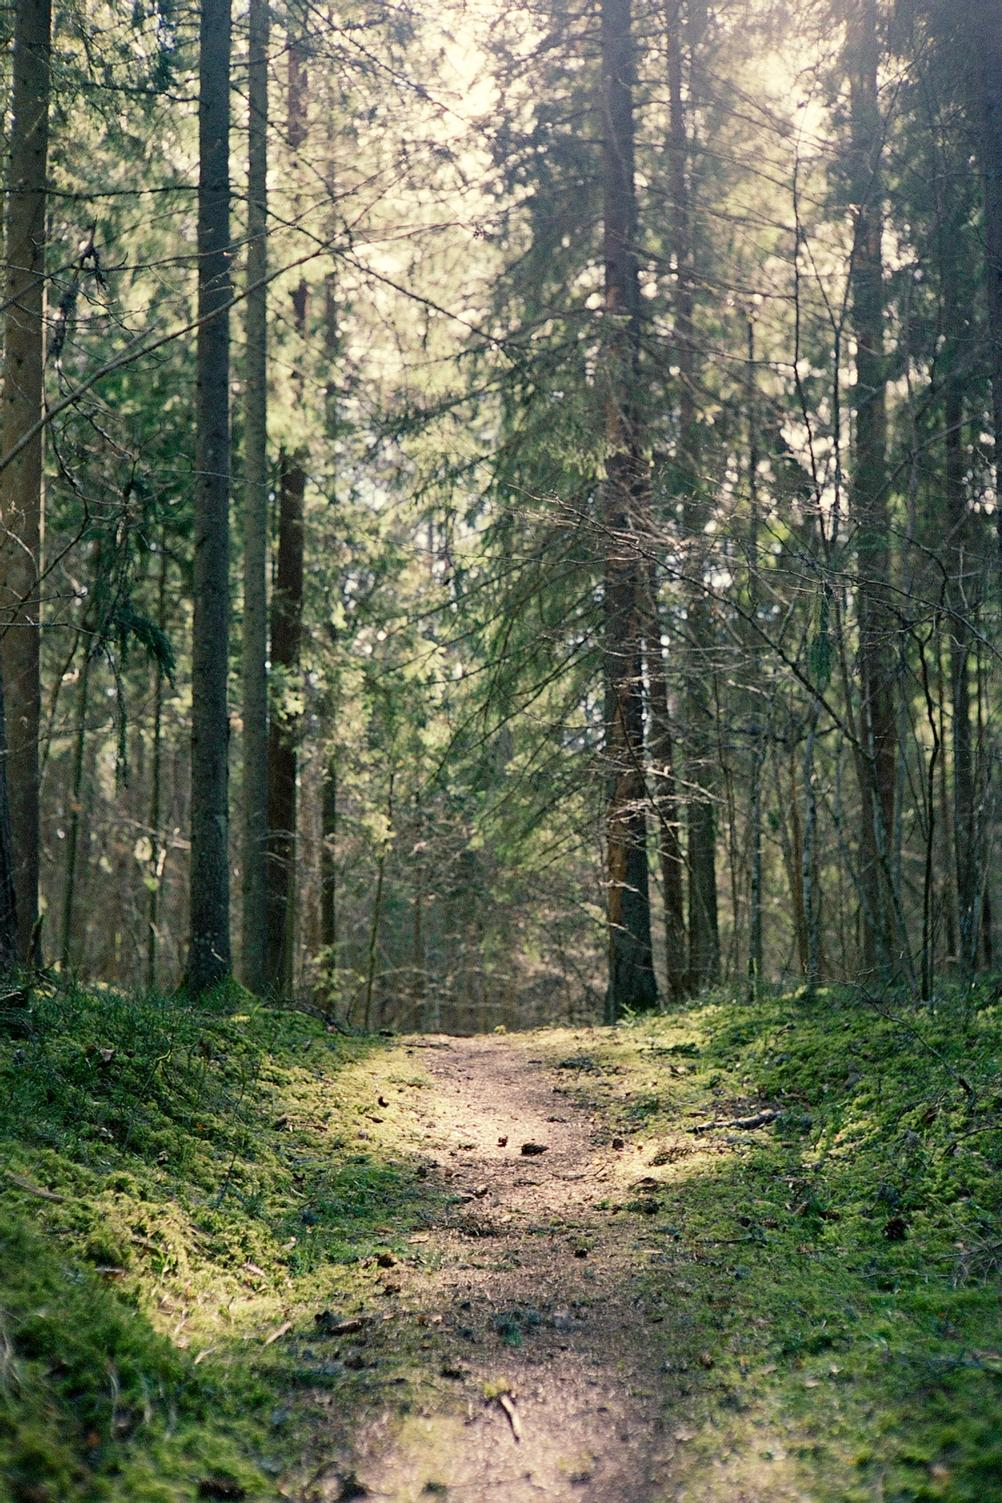 Photo of a path in forest with some sunlight shining on it.